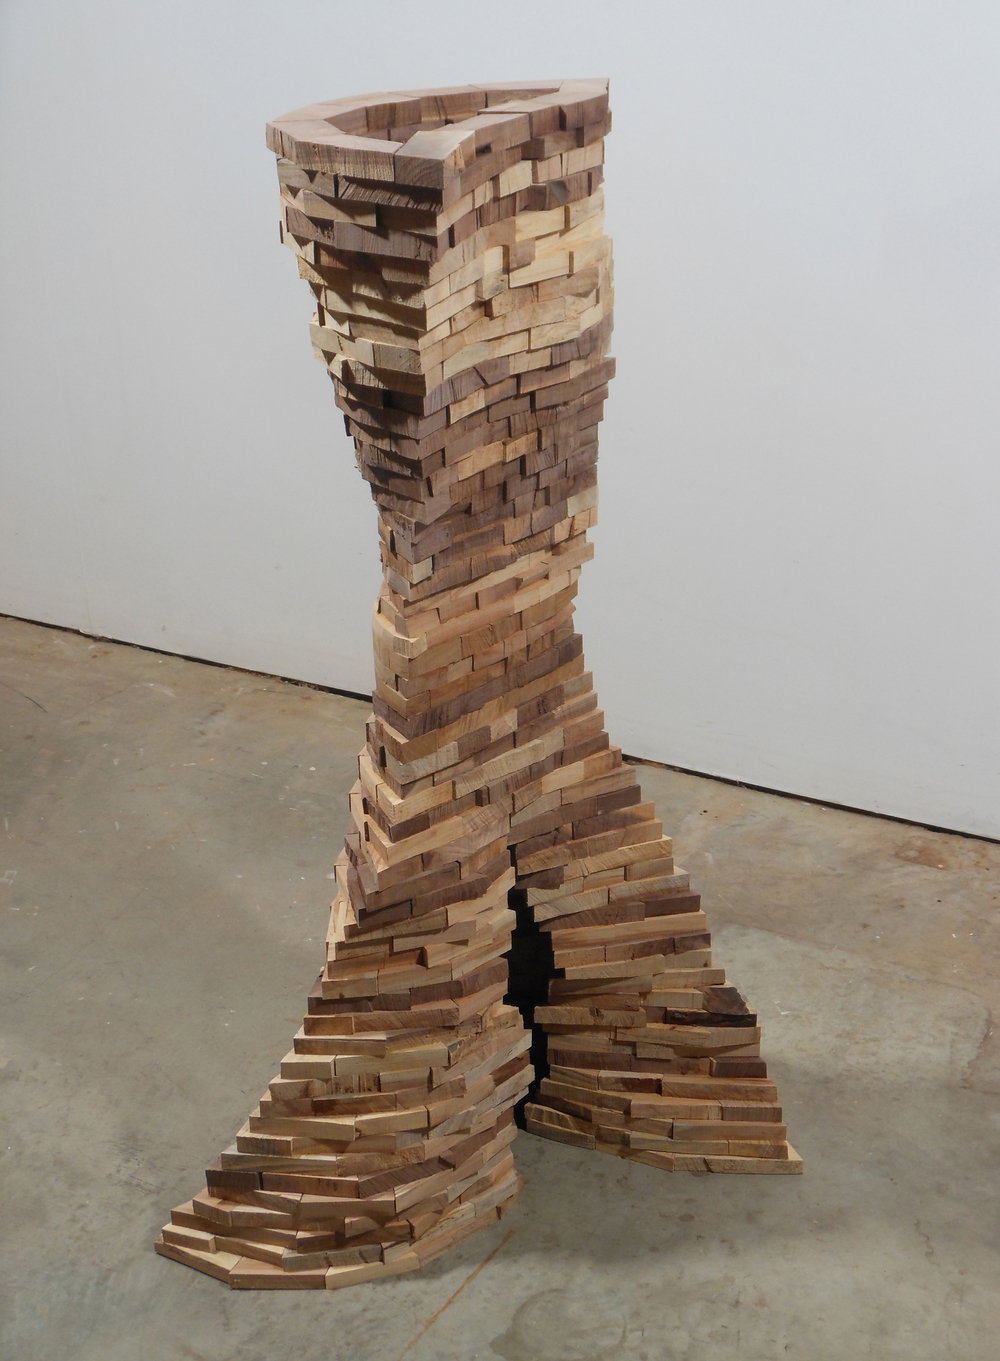 Cava,  2013 Walnut, hickory, and mulberry 44 1/2 x 29 x 16 inches